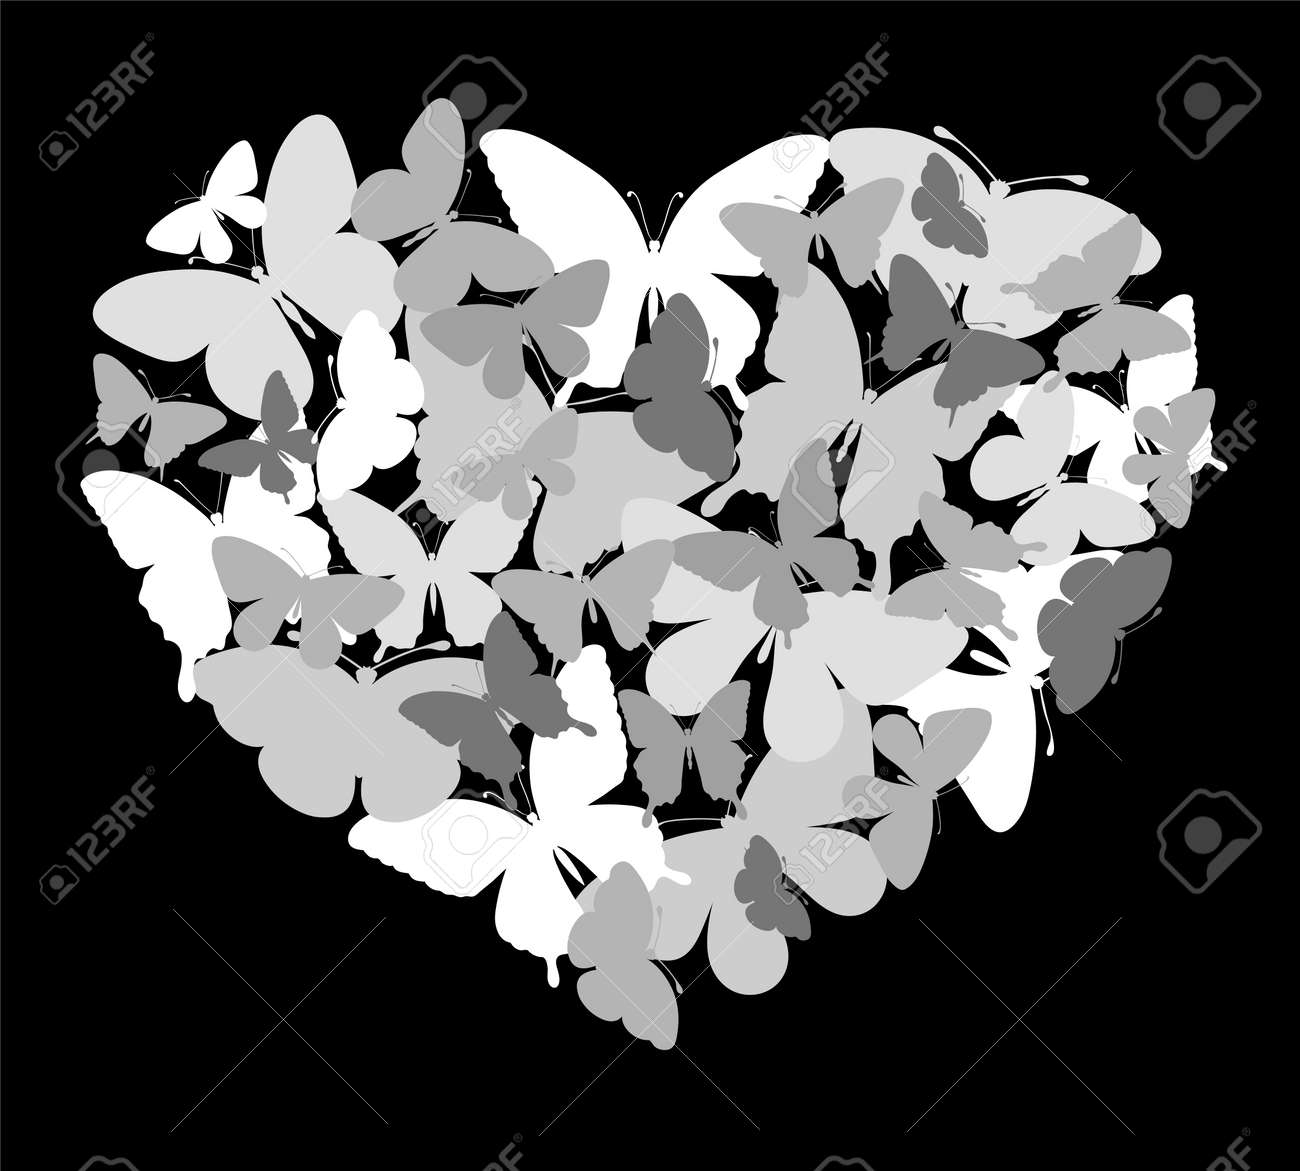 Beautiful black and white silhouette heart of butterflies flying background for design greeting card and